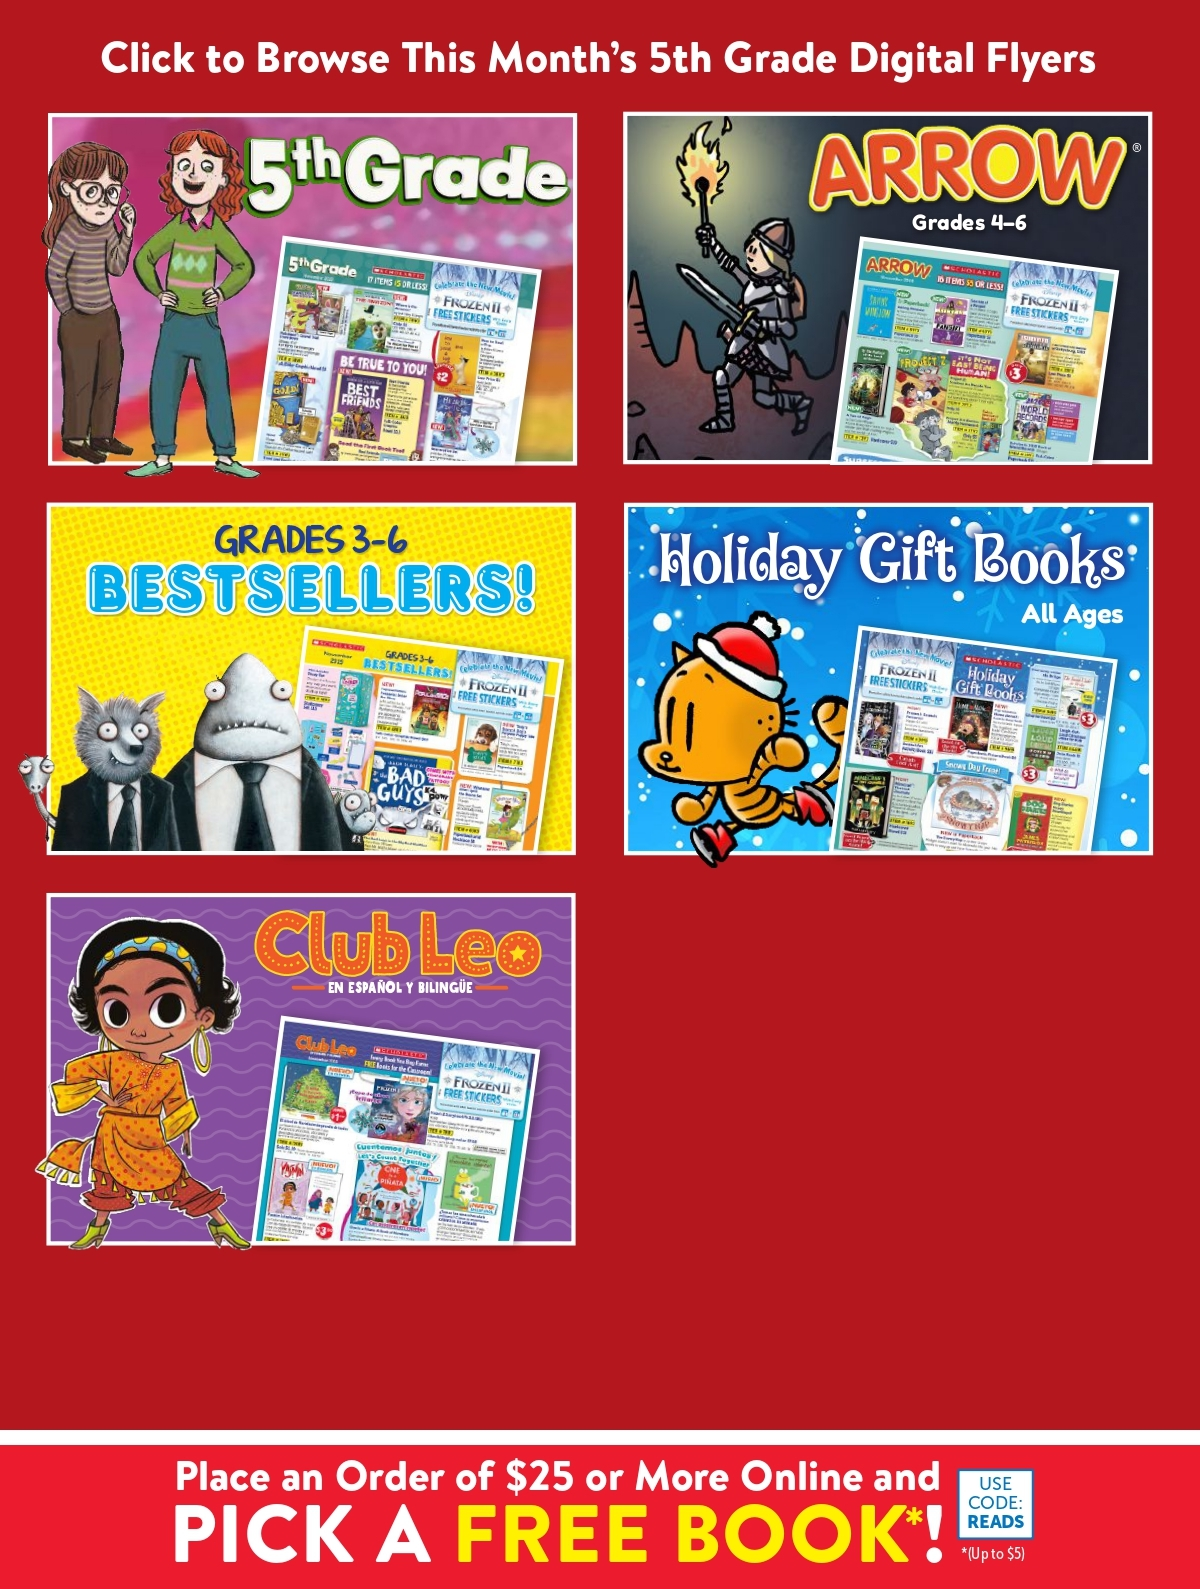 Scholastic Book Clubs: All Digital Flyers for 5th Grade November